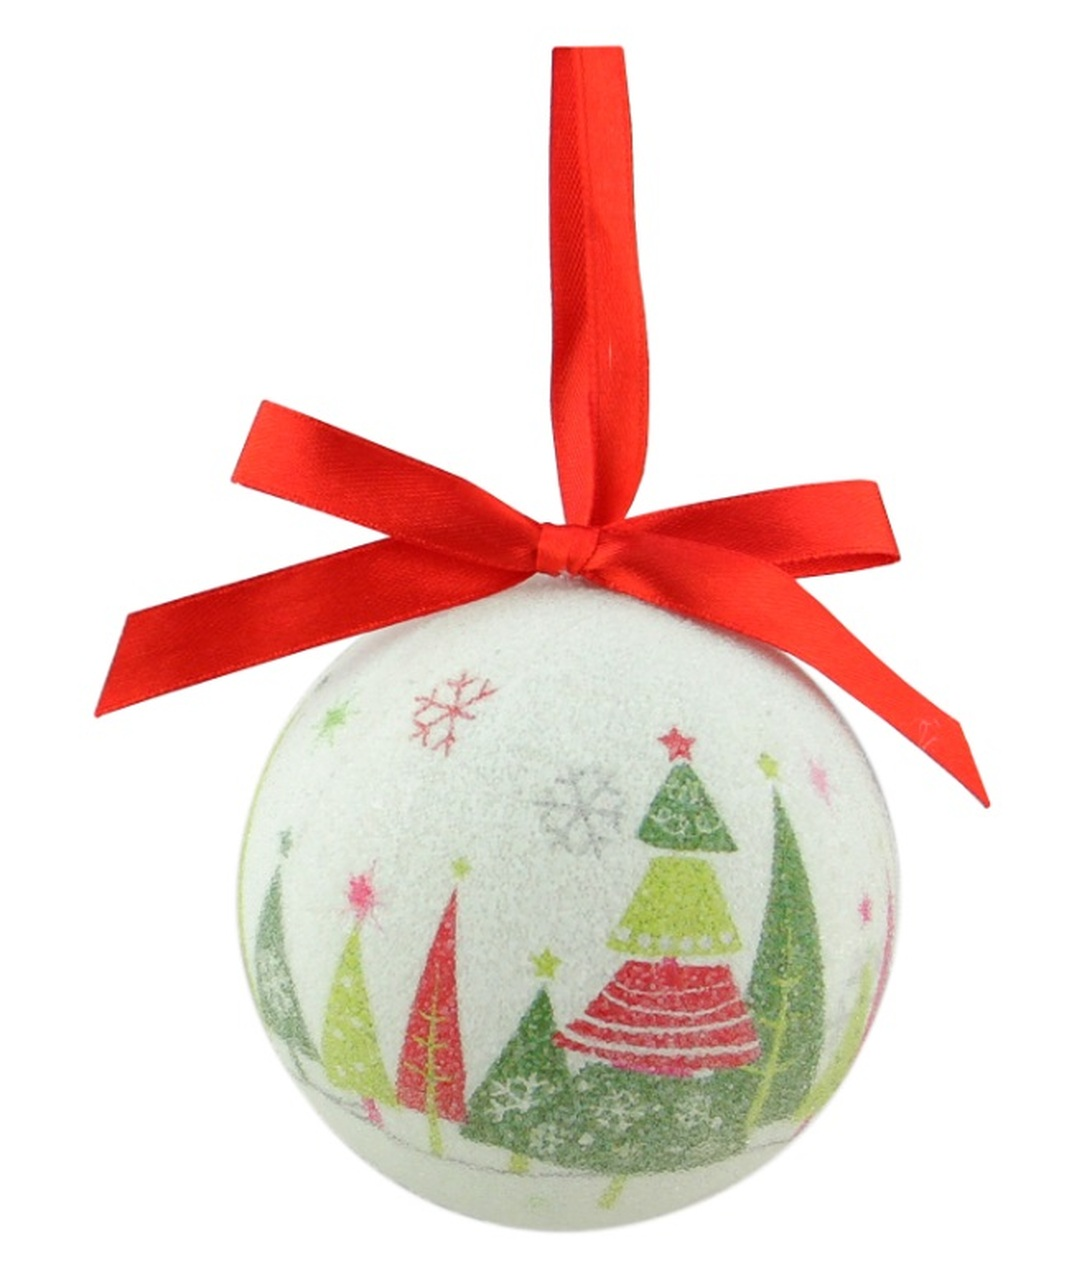 7 piece whimsical red white and green decoupage shatterproof christmas ball ornament set 275 32206935